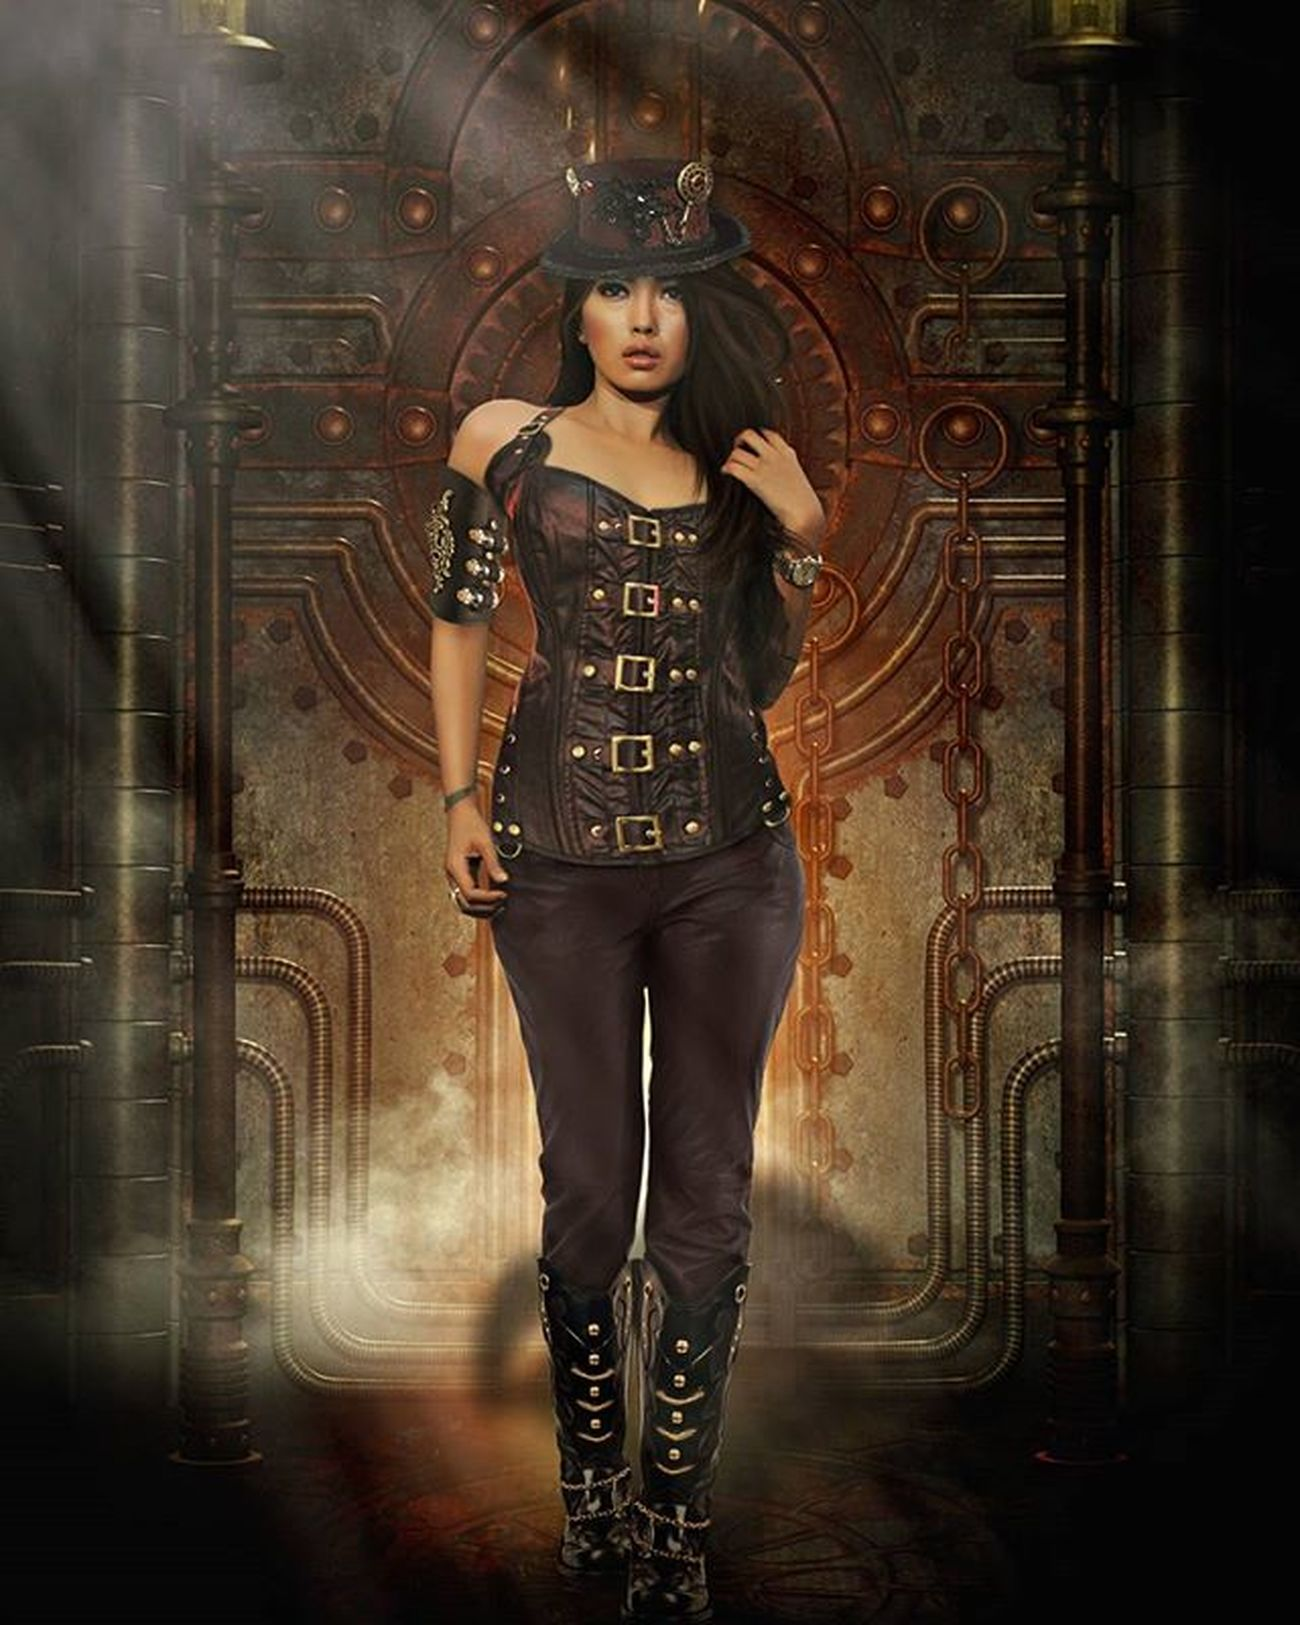 SteamPunk Digitalimaging Digitalart  Steampunk Steampunkgirl Photoshop Darkscene Retouch Photoretouch Steampunkcostume Huscyendra